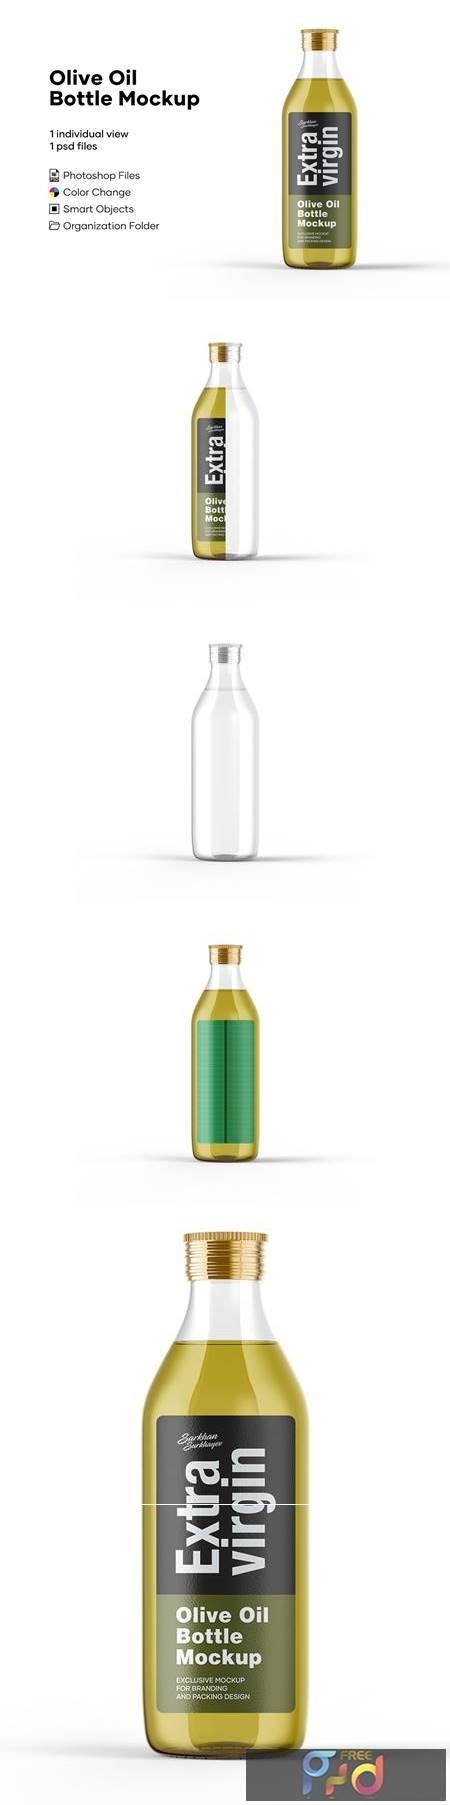 Olive Oil Bottle Mockup 5276739 1